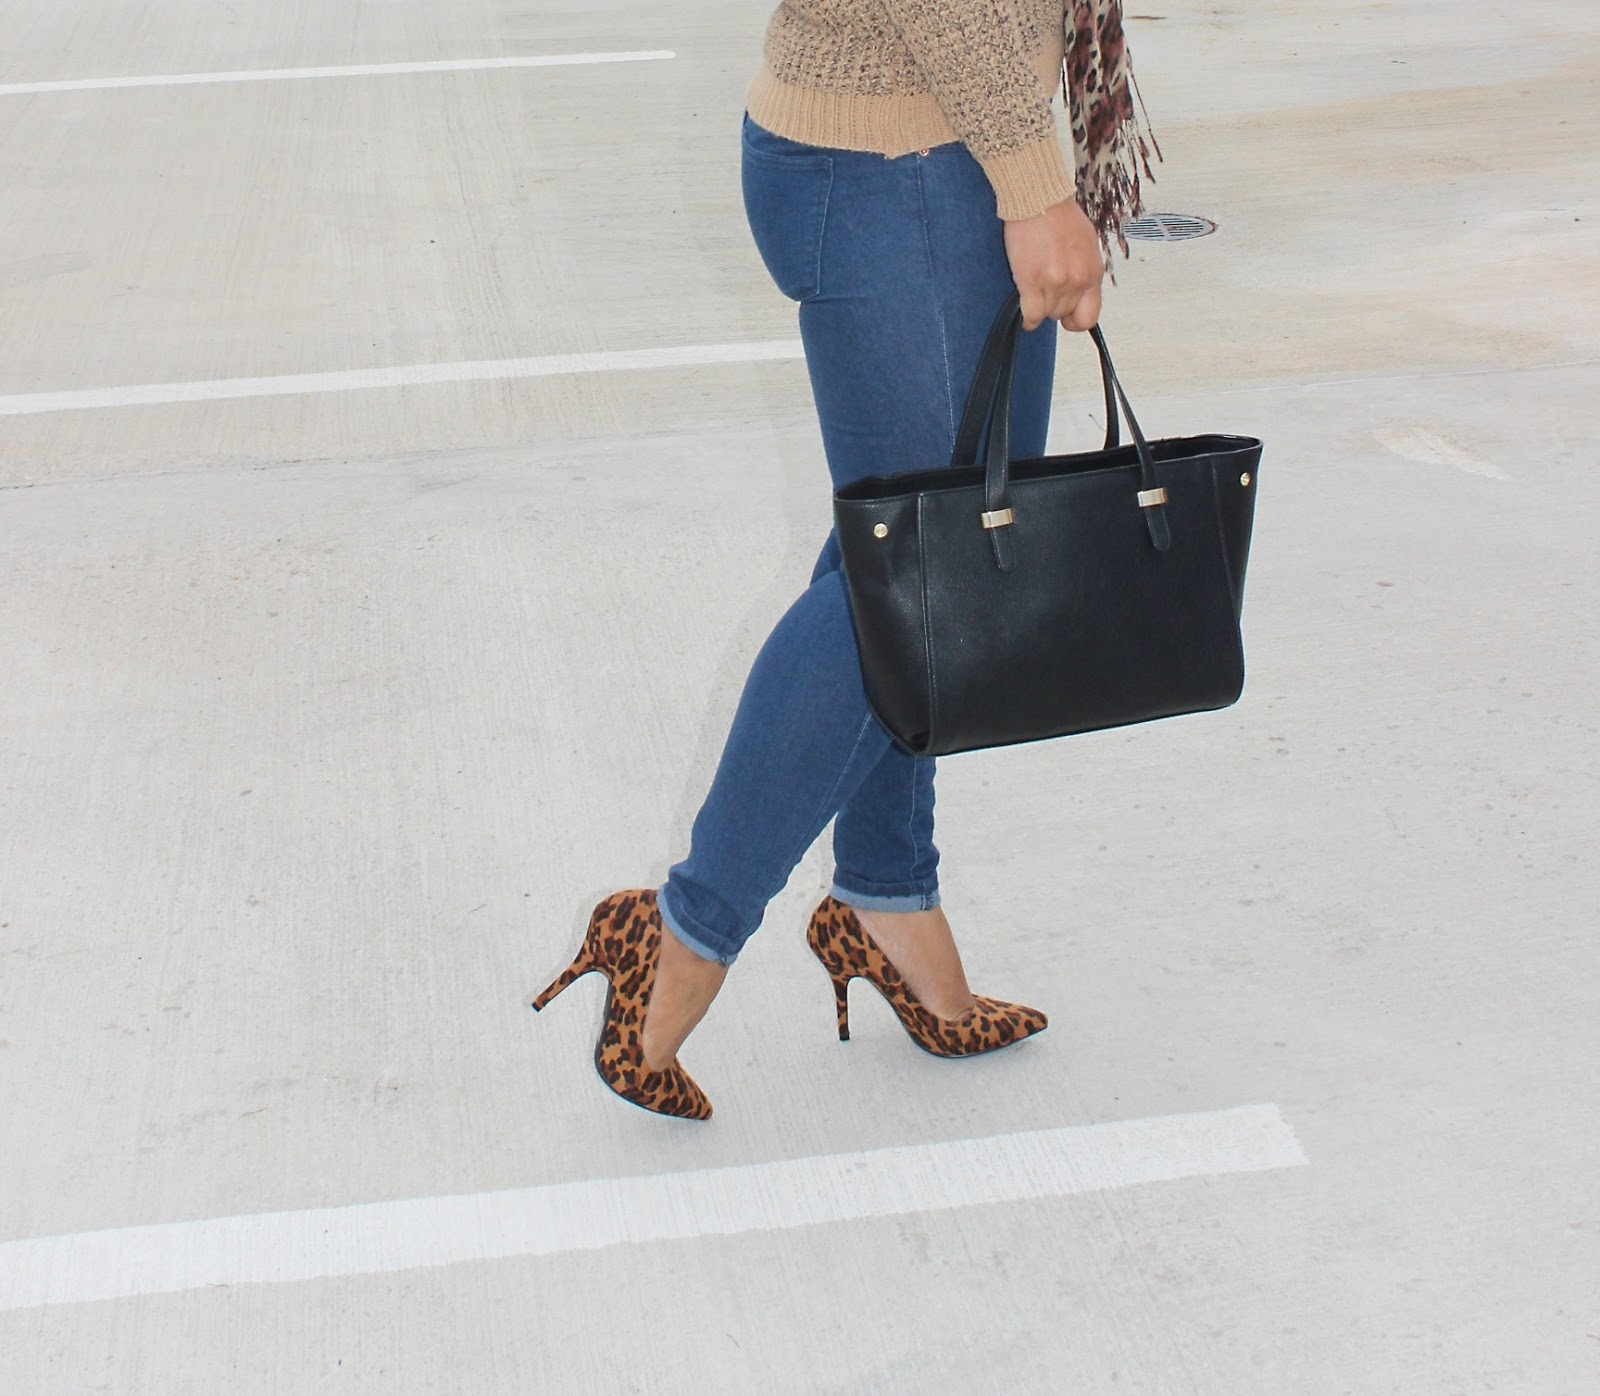 leopard, forever21, leopard heels, chic look, blogger, fashion, how to style leopard